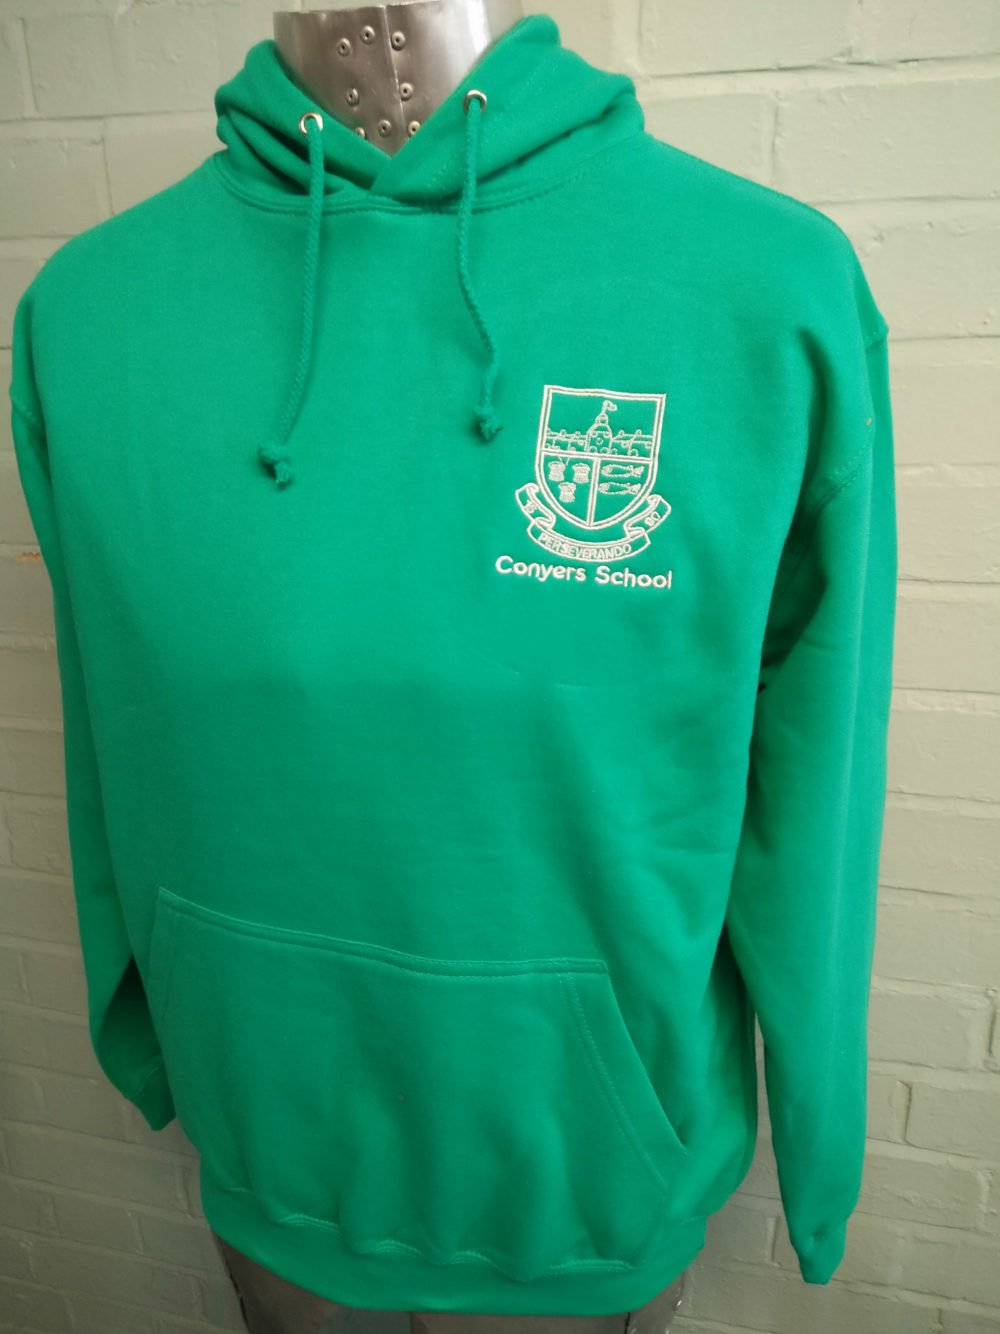 Green Printed 2016 Leavers Hoodies